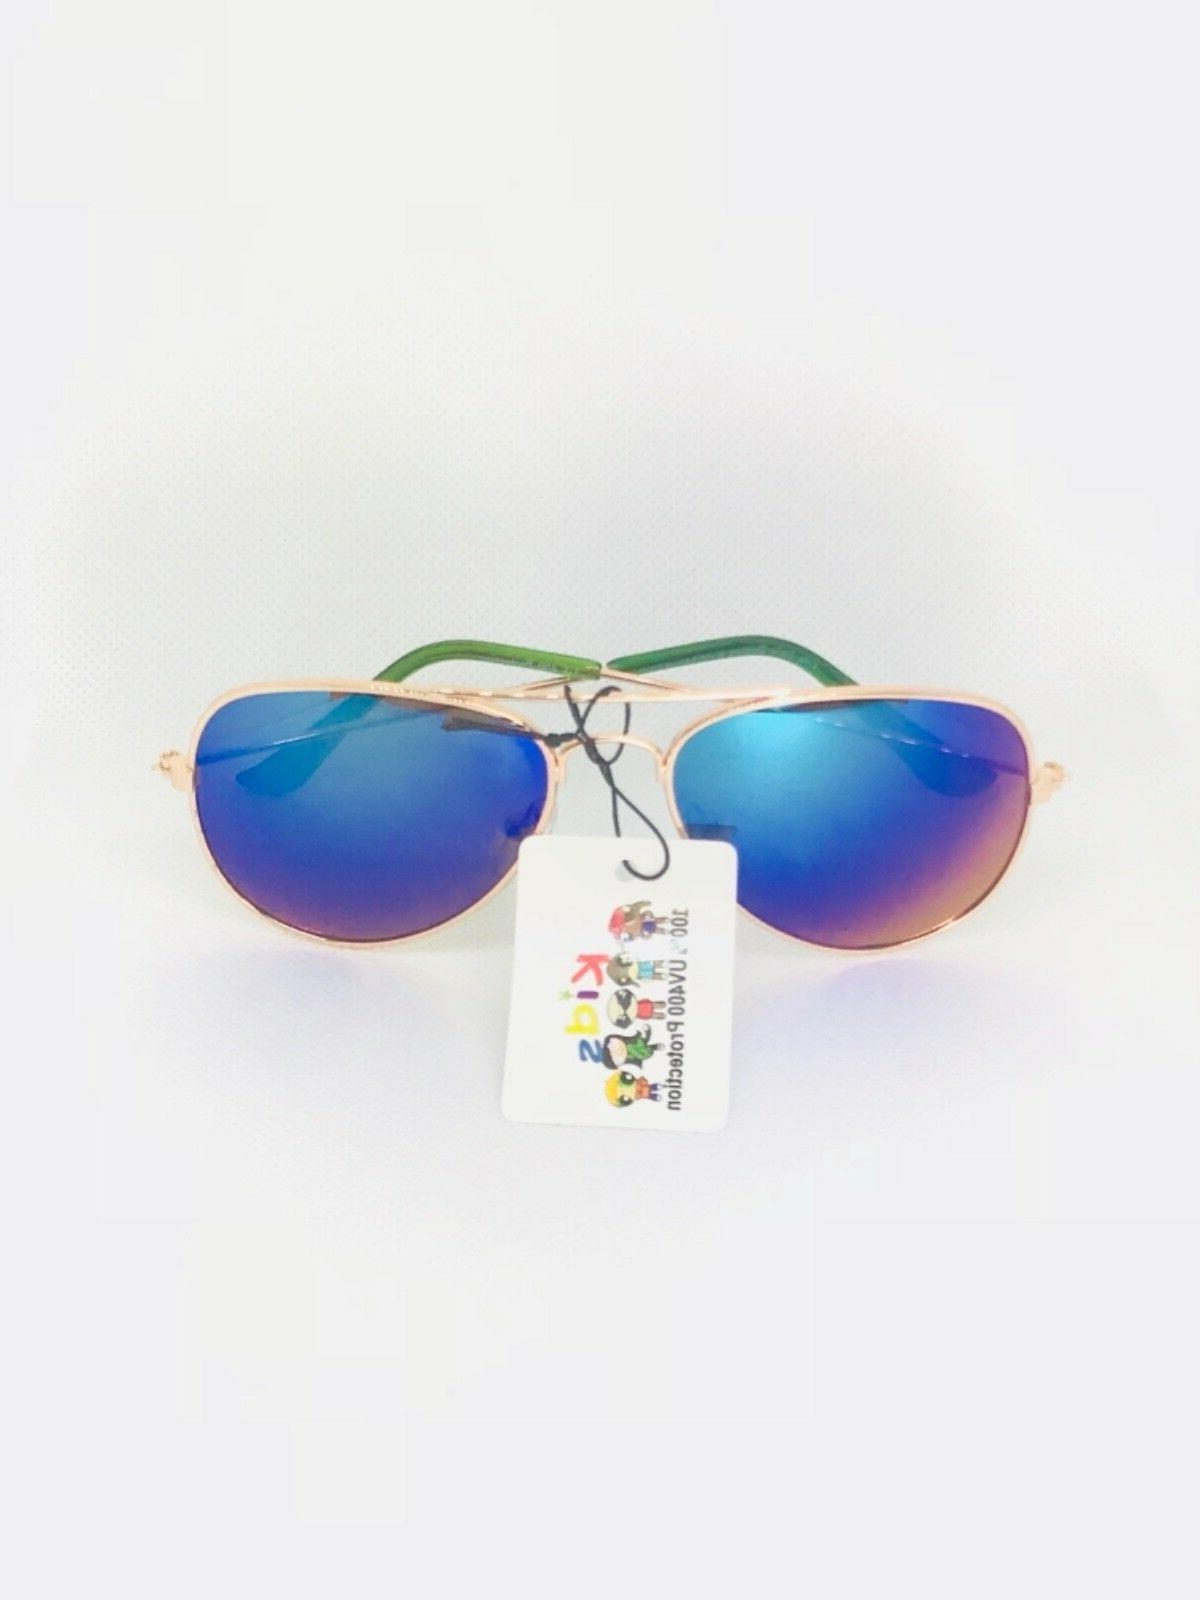 KIDS junior size AVIATOR sunglasses Children's